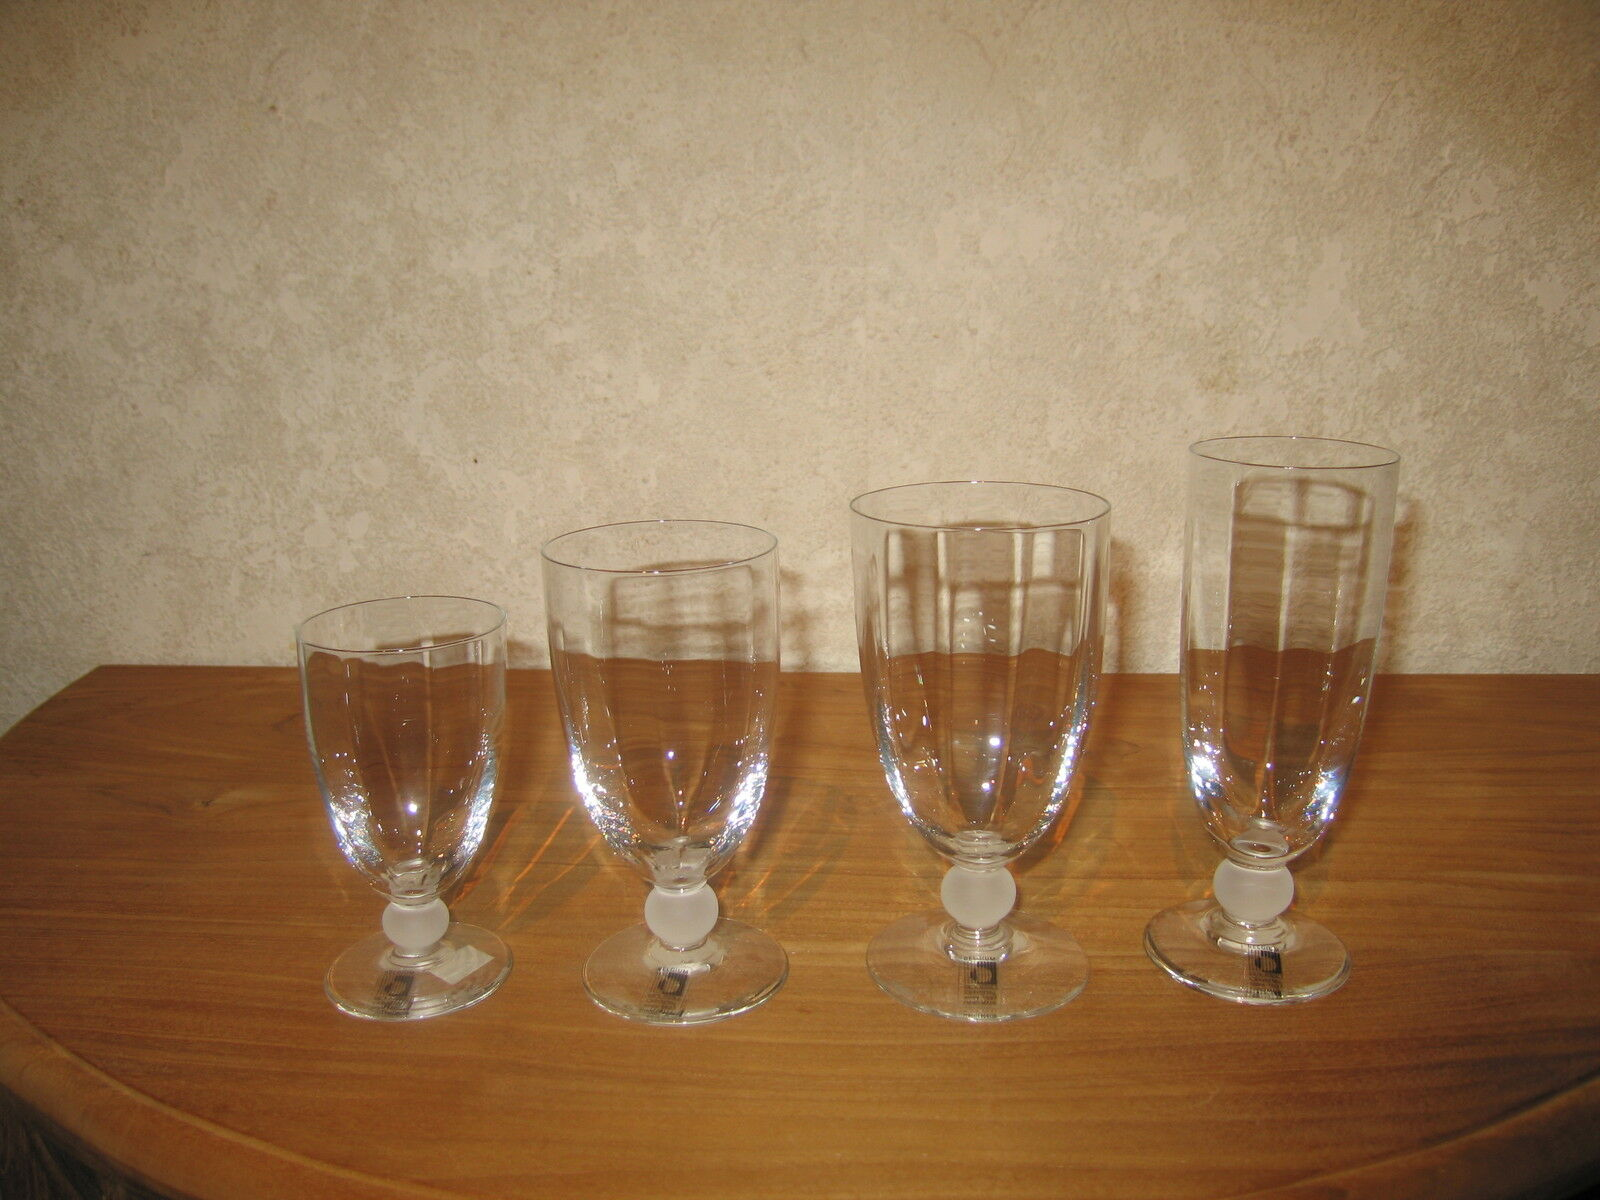 BOUSSU NEW CHRISTIANE BOUTON SATINE Set 4 Verres Glasses